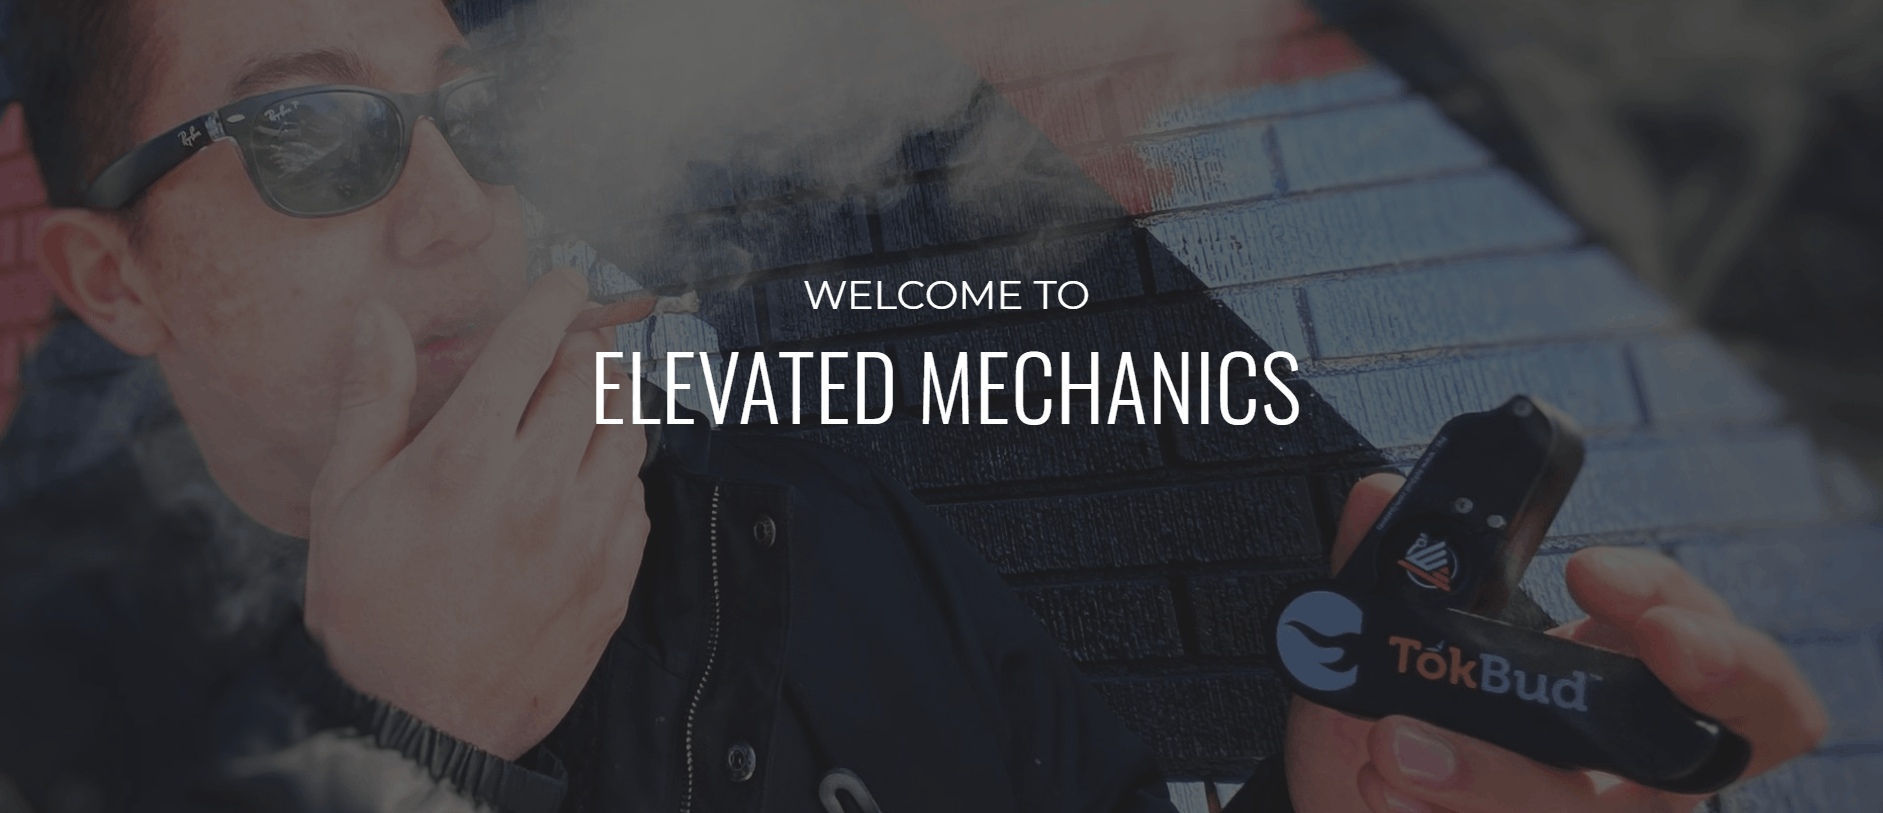 Elevated Machines Smoking Accessories Coupons Enjoying With Tokbud